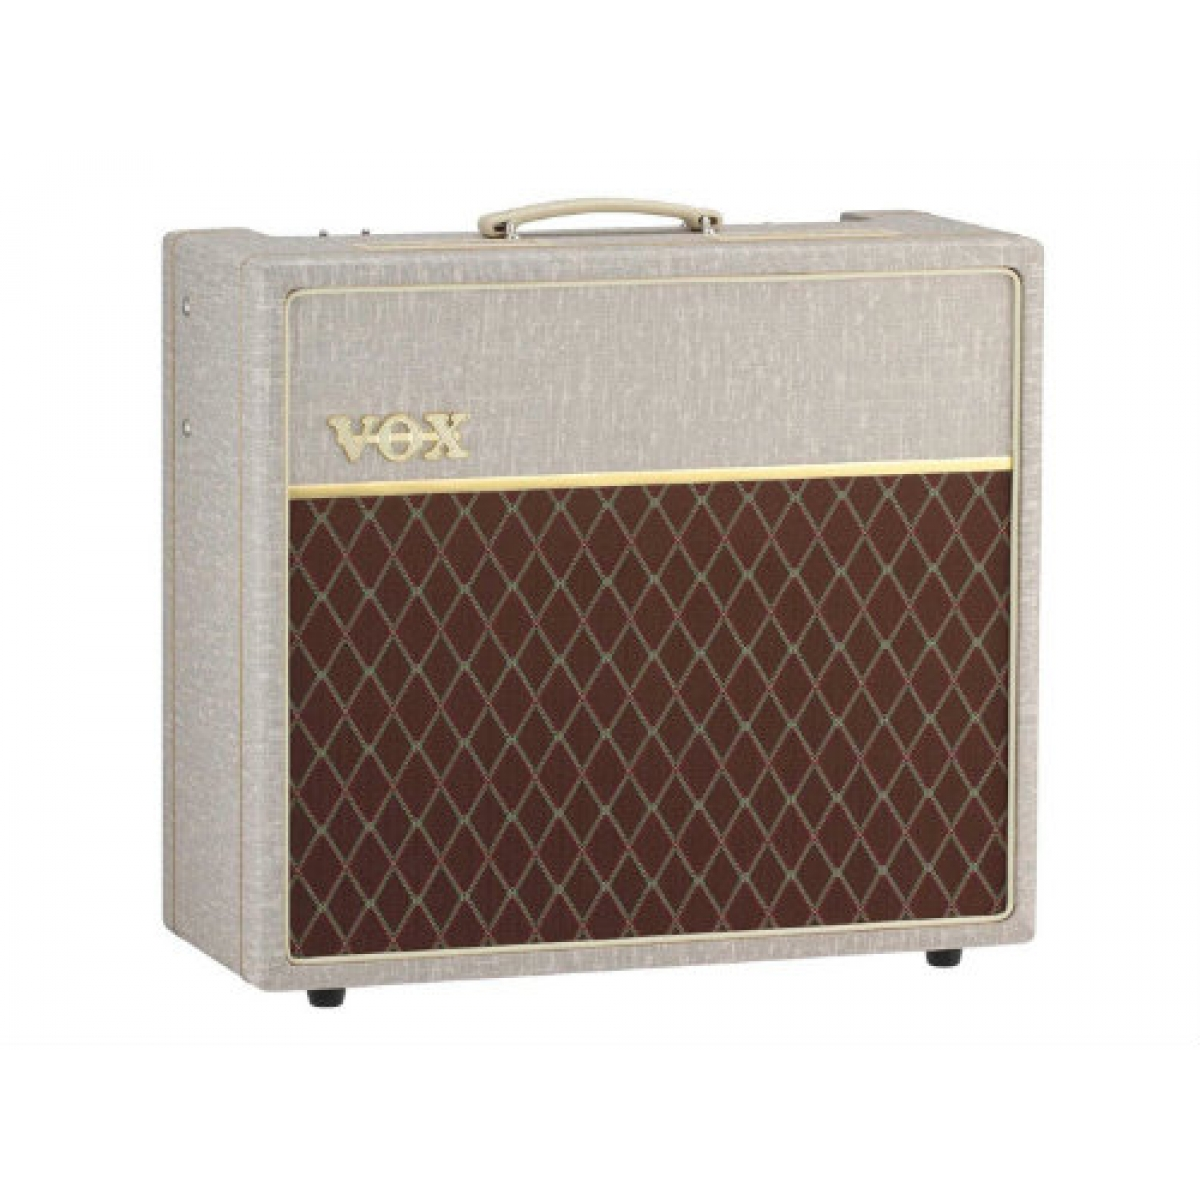 vox ac15hw1 hand wired guitar combo amp 15w valve 1x12 at promenade music. Black Bedroom Furniture Sets. Home Design Ideas